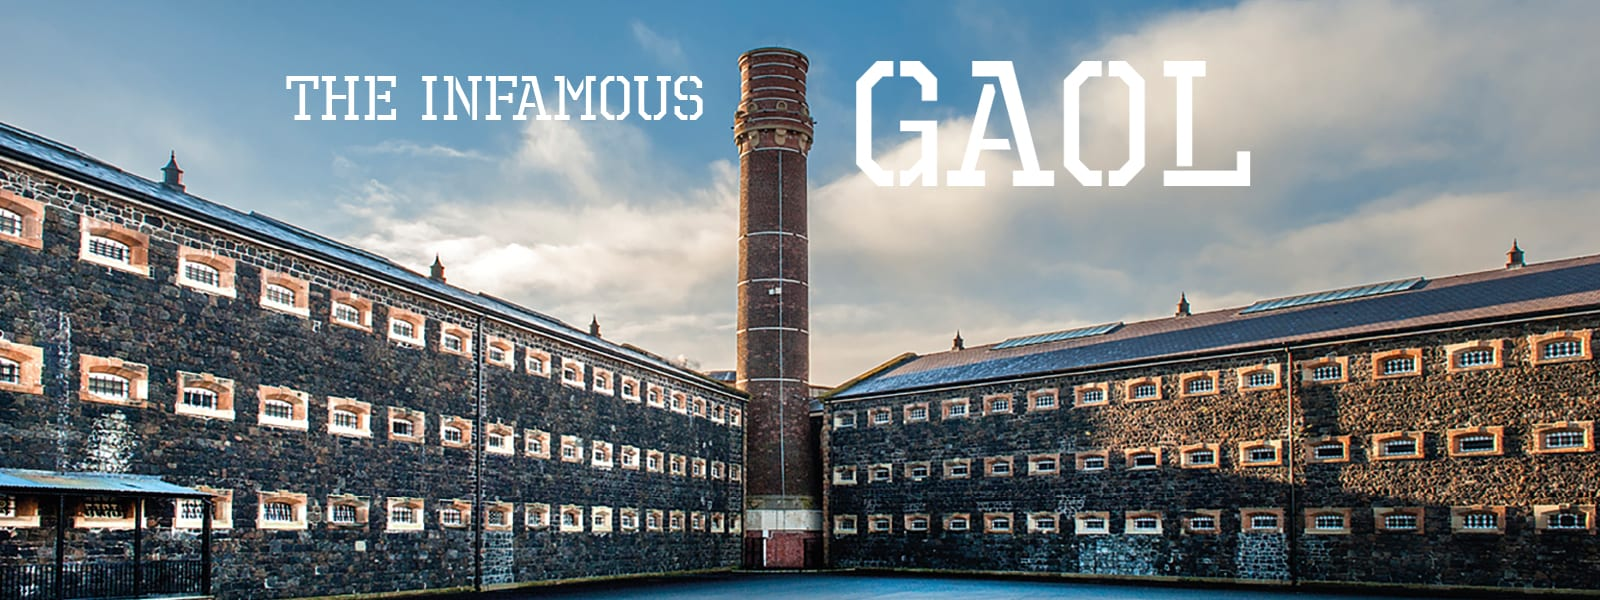 Slider Image – Events at the Crumlin Road Gaol